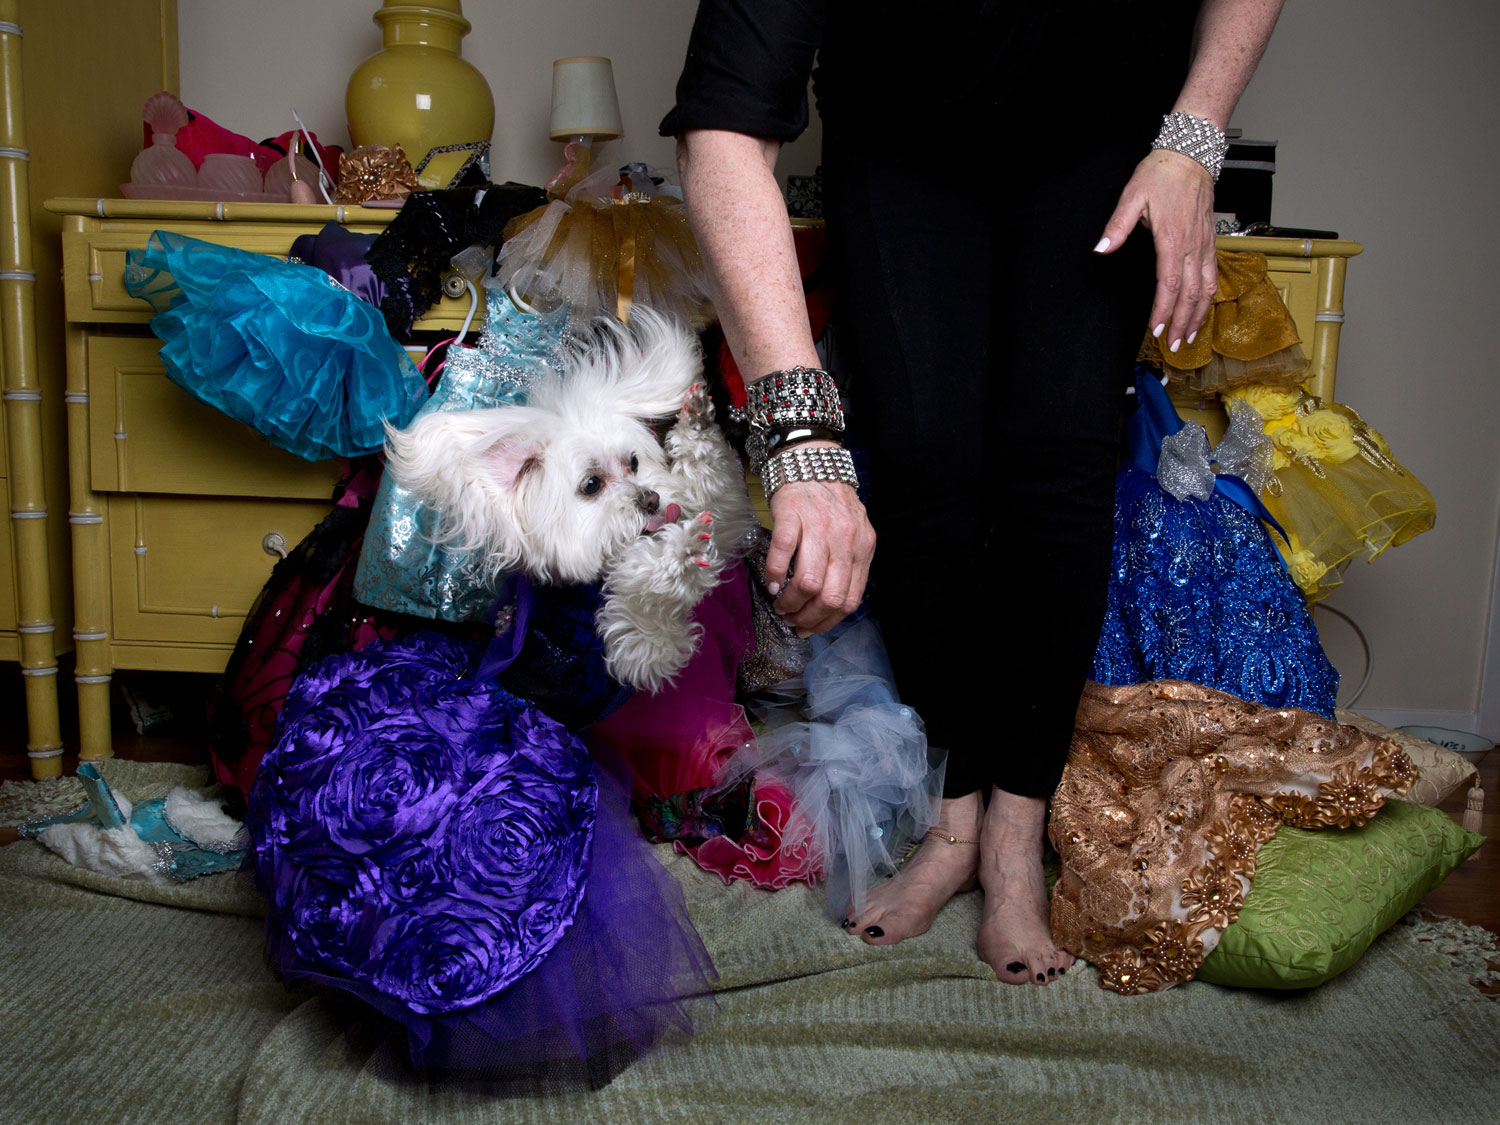 ZZ, a Maltipoo, companion to Ilene Zeins, at home in Brooklyn, N.Y. wearing Olga Yuditsky for Orostani Couture for Haute Doggies.